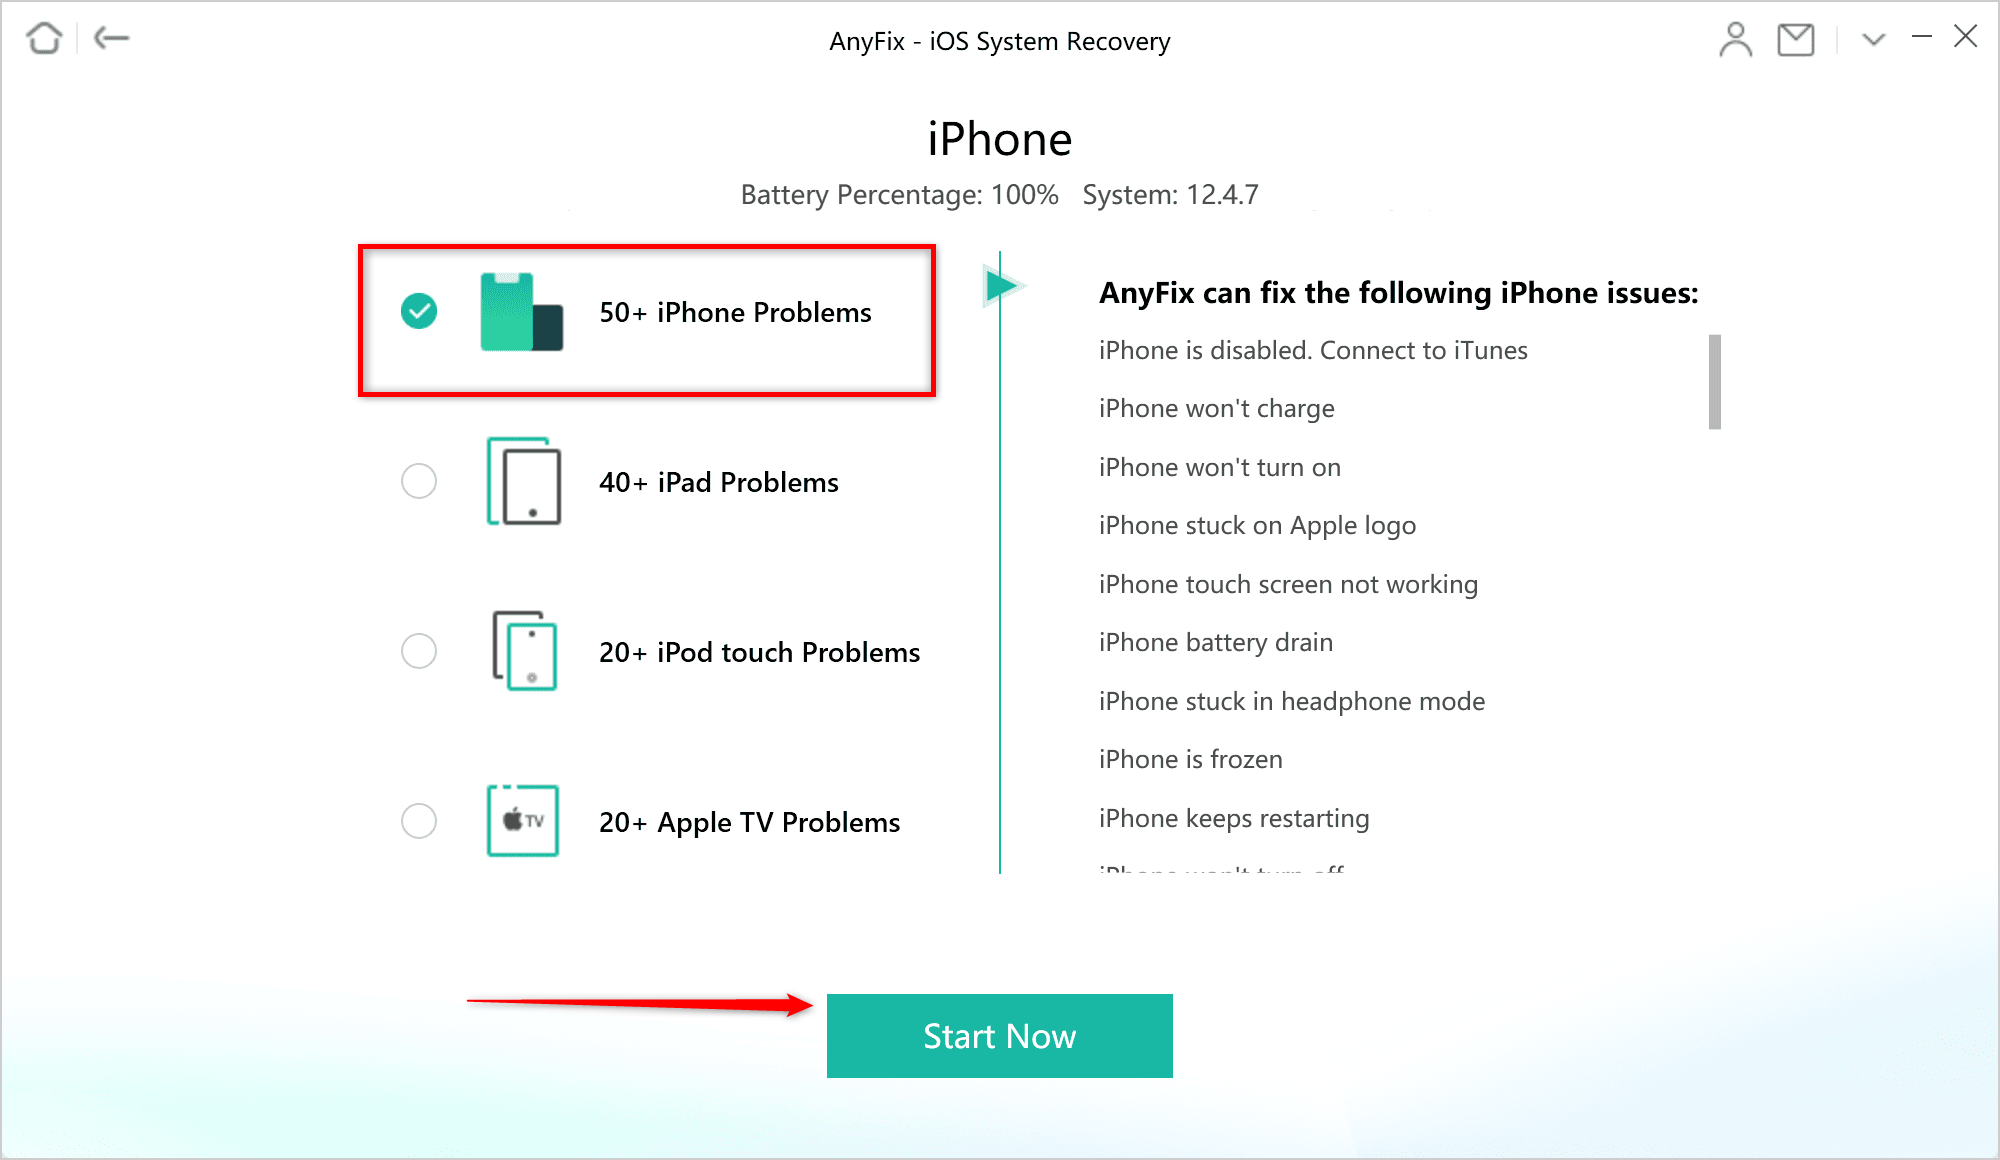 The Best Way to Fix iPhone Issue via AnyFix